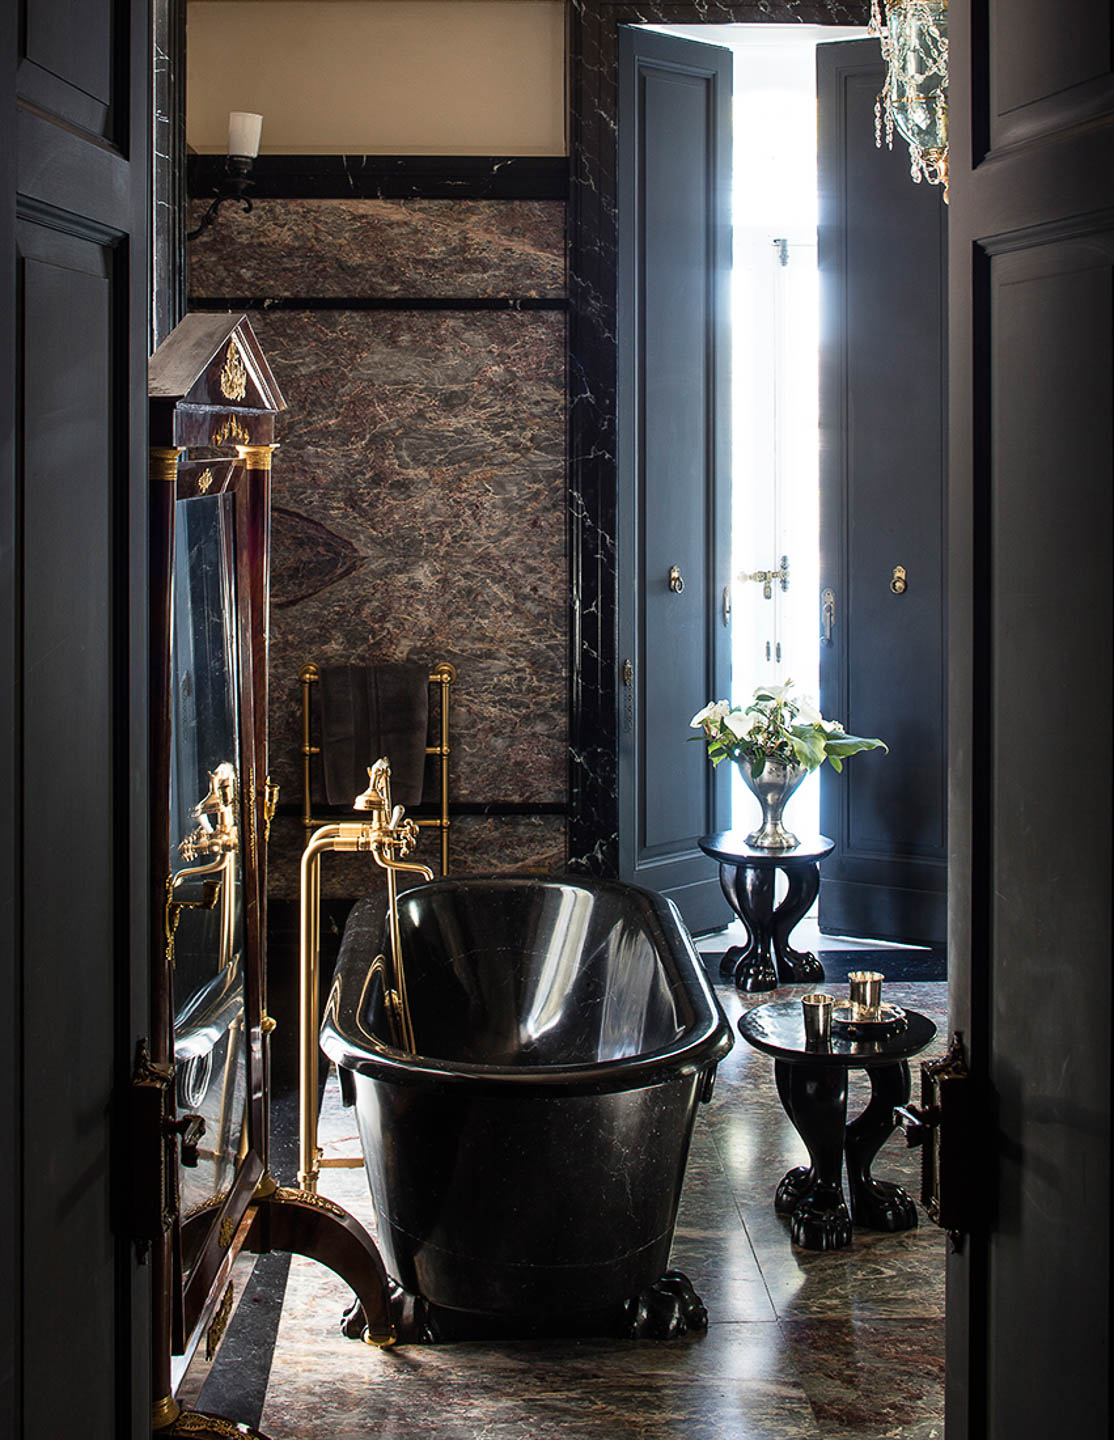 Villa Astor fantastic most beautiful marble master bathroom flower vase best decor French decoration luxurious Italian destination experience The Heritage Collection